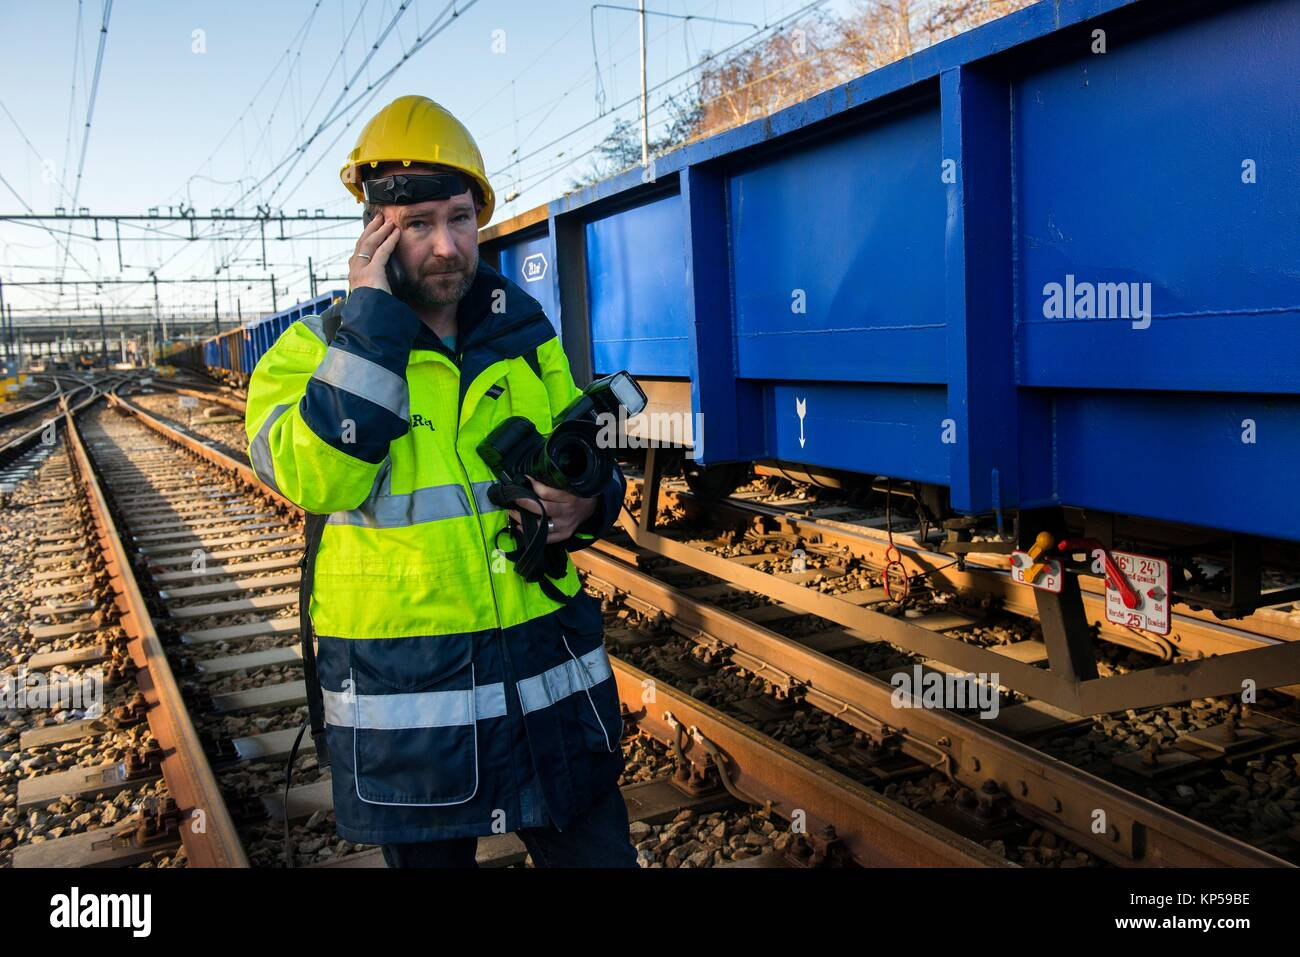 Rotterdam, Netherlands. Male spokesman of ProRail railway infrastructure corporation checking up on major overhaul - Stock Image